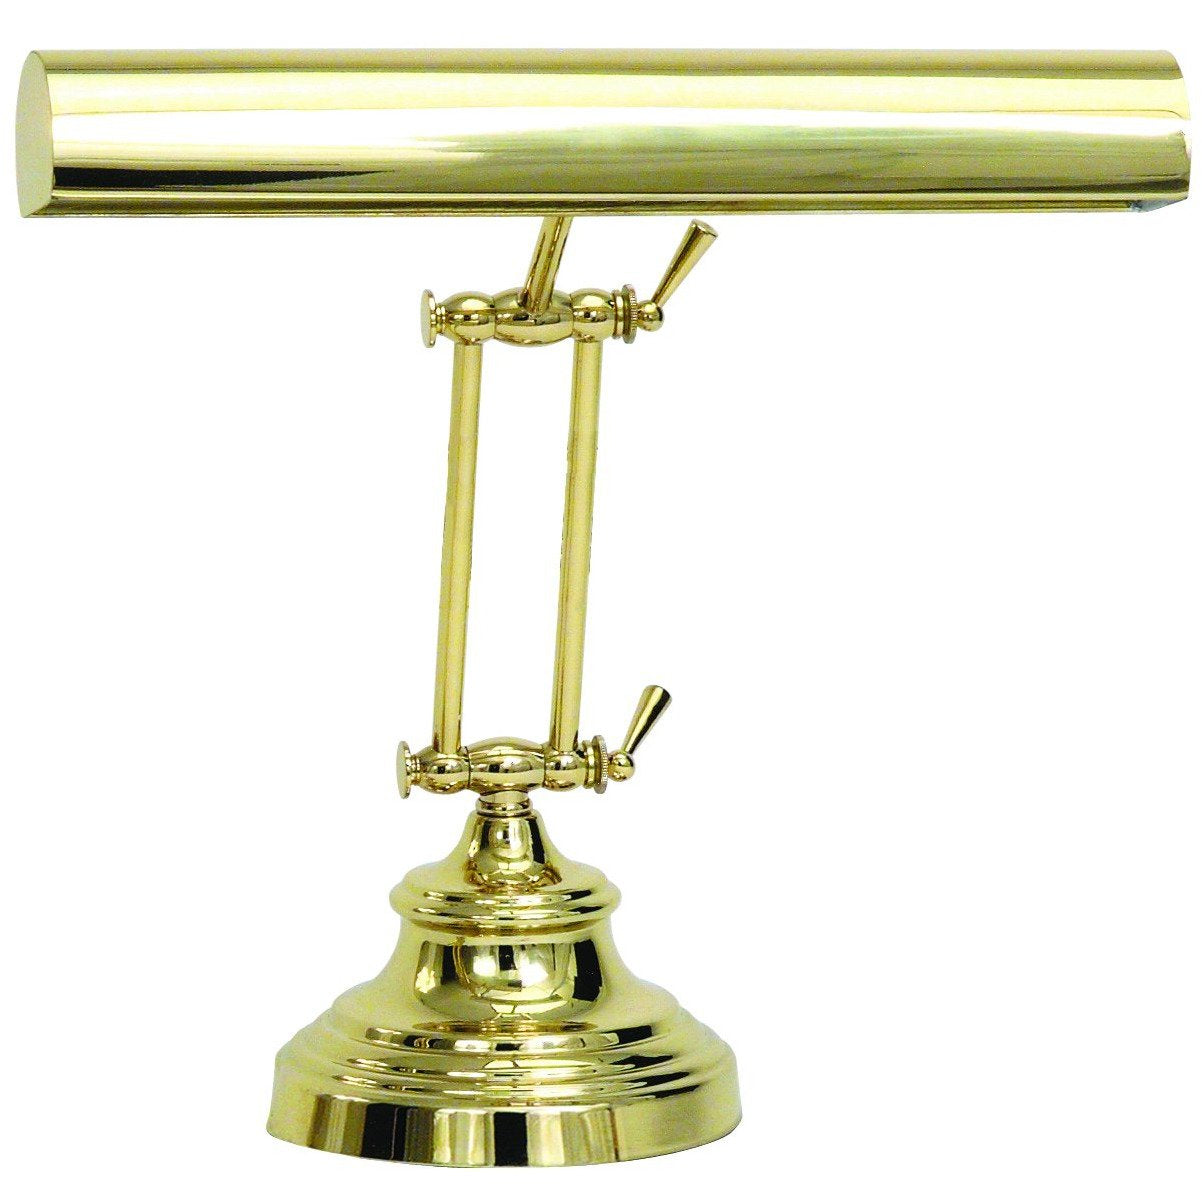 House Of Troy Desk Lamps Advent Desk/Piano Lamp by House Of Troy AP14-41-61